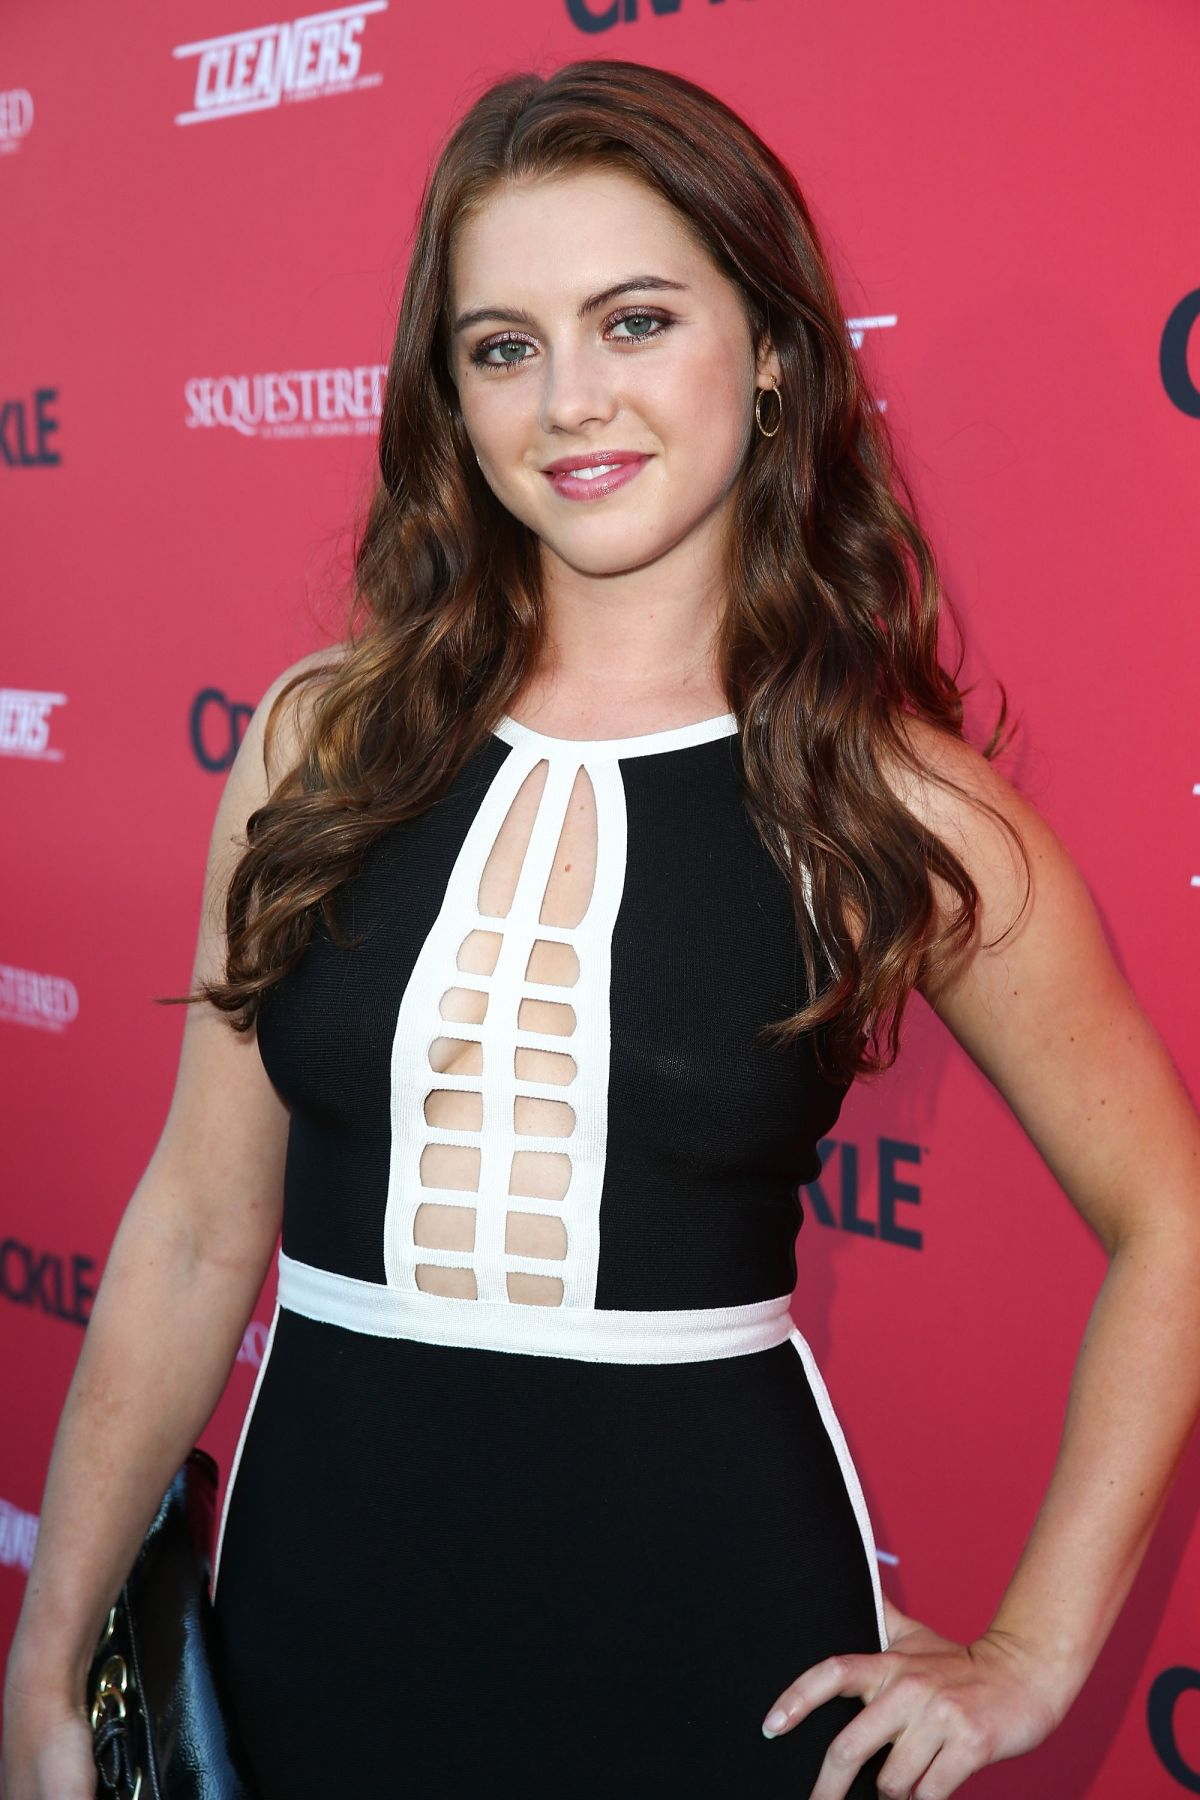 LINDSAY BUSHMAN at Sequestered and Cleaners Premieres in West Hollywood